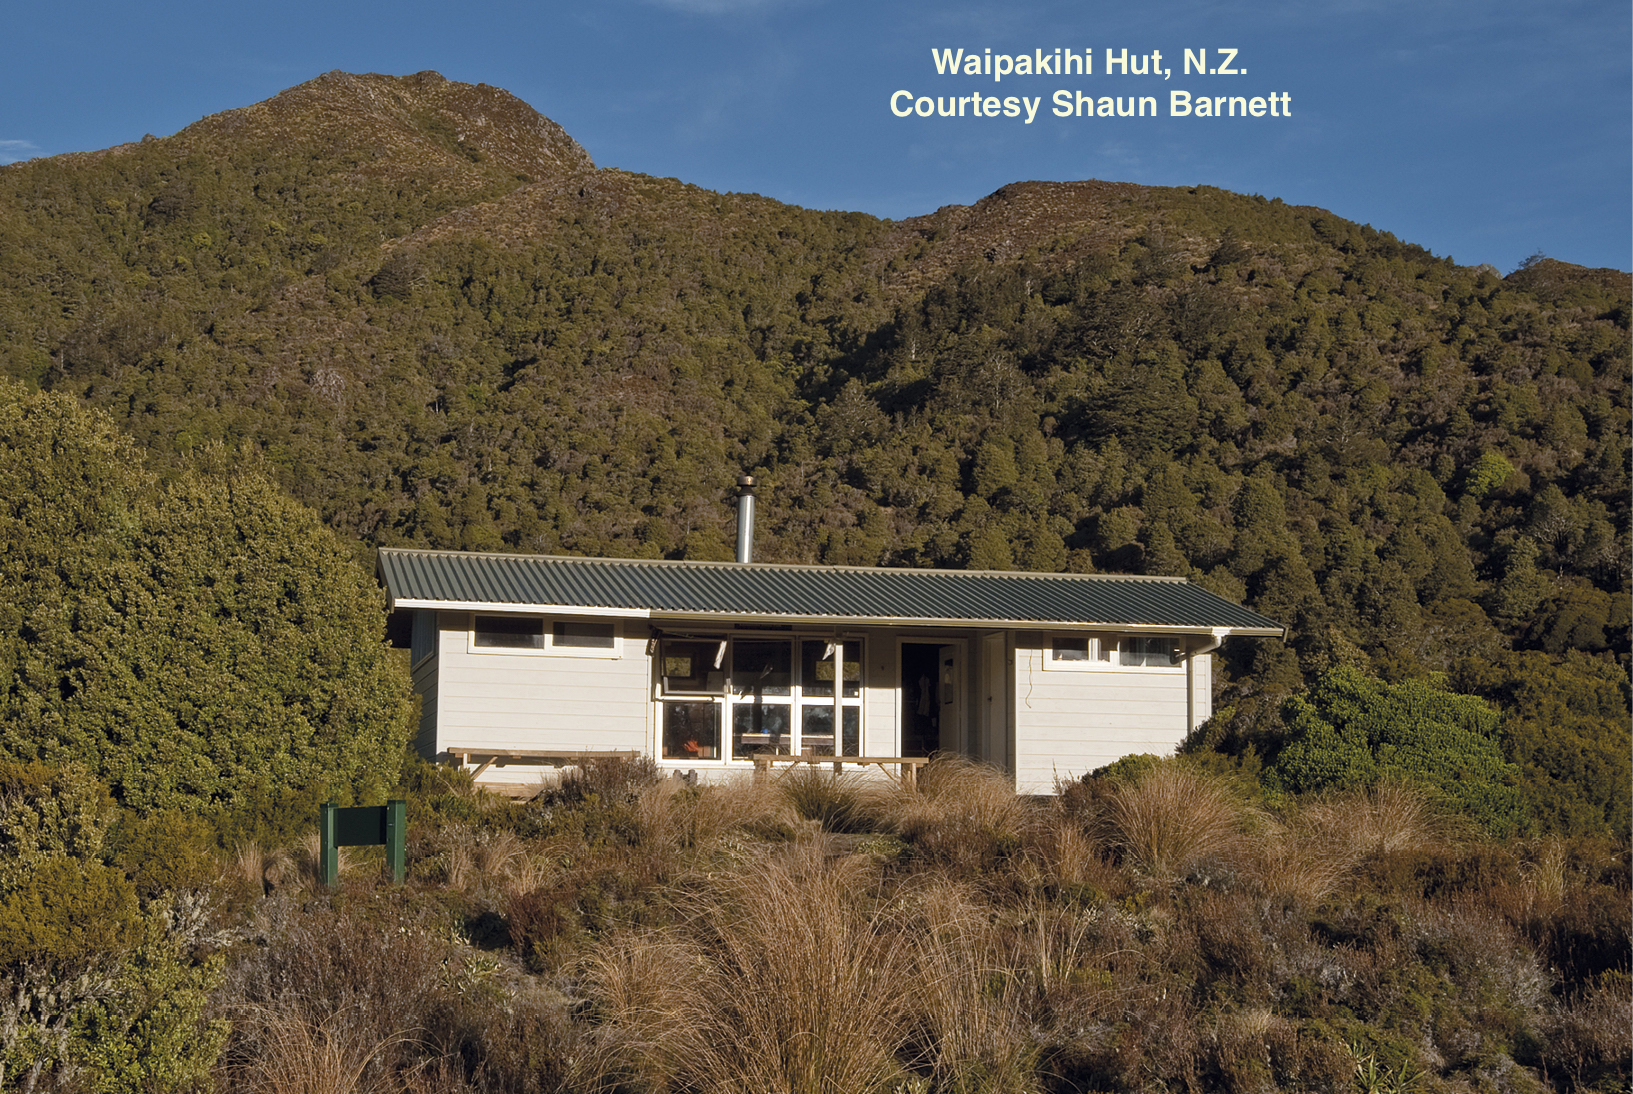 Waipakihi Hut, Lockwood style architecture, NZ Forest Service